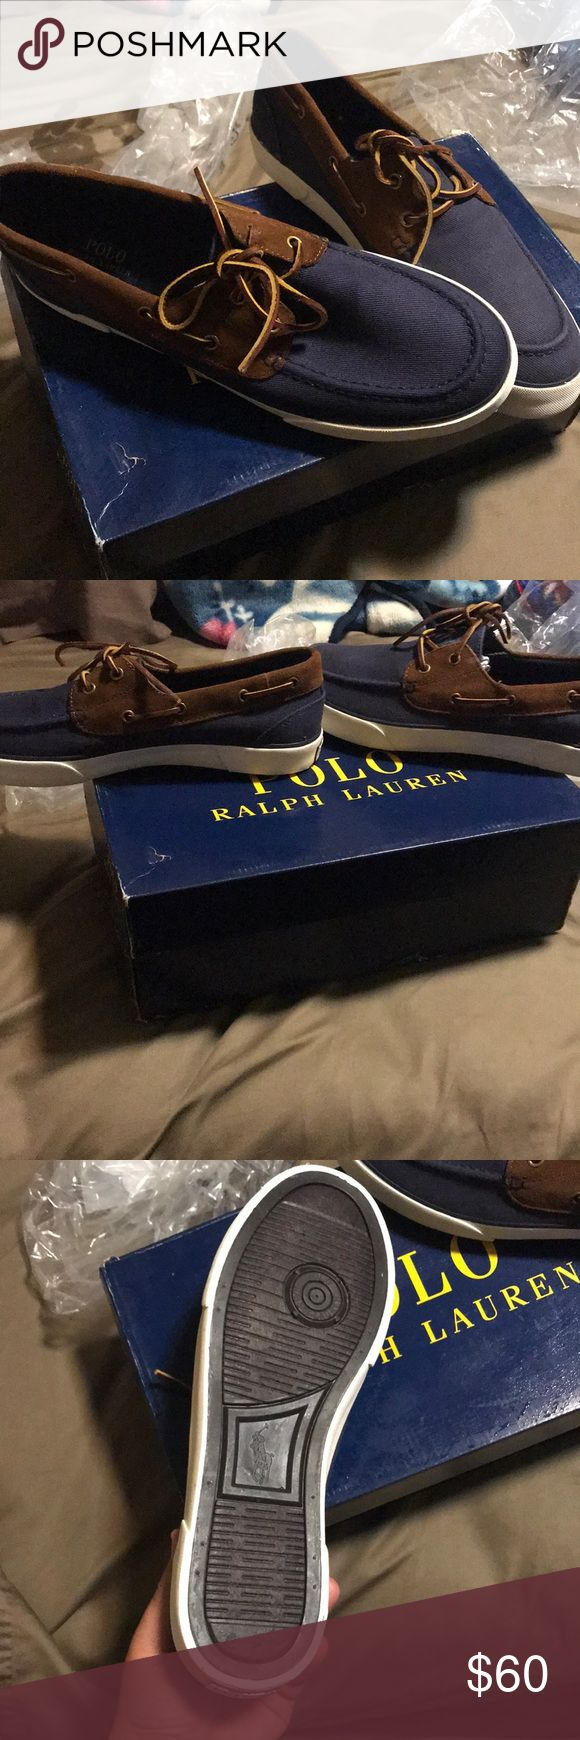 Polo Ralph Lauren boat shoes Navy blue polo Ralph Lauren shoes , brand new Never warn, received as gift but they were a size to big, will make a great Christmas gift since they are brand new open to any offers Polo by Ralph Lauren Shoes Boat Shoes